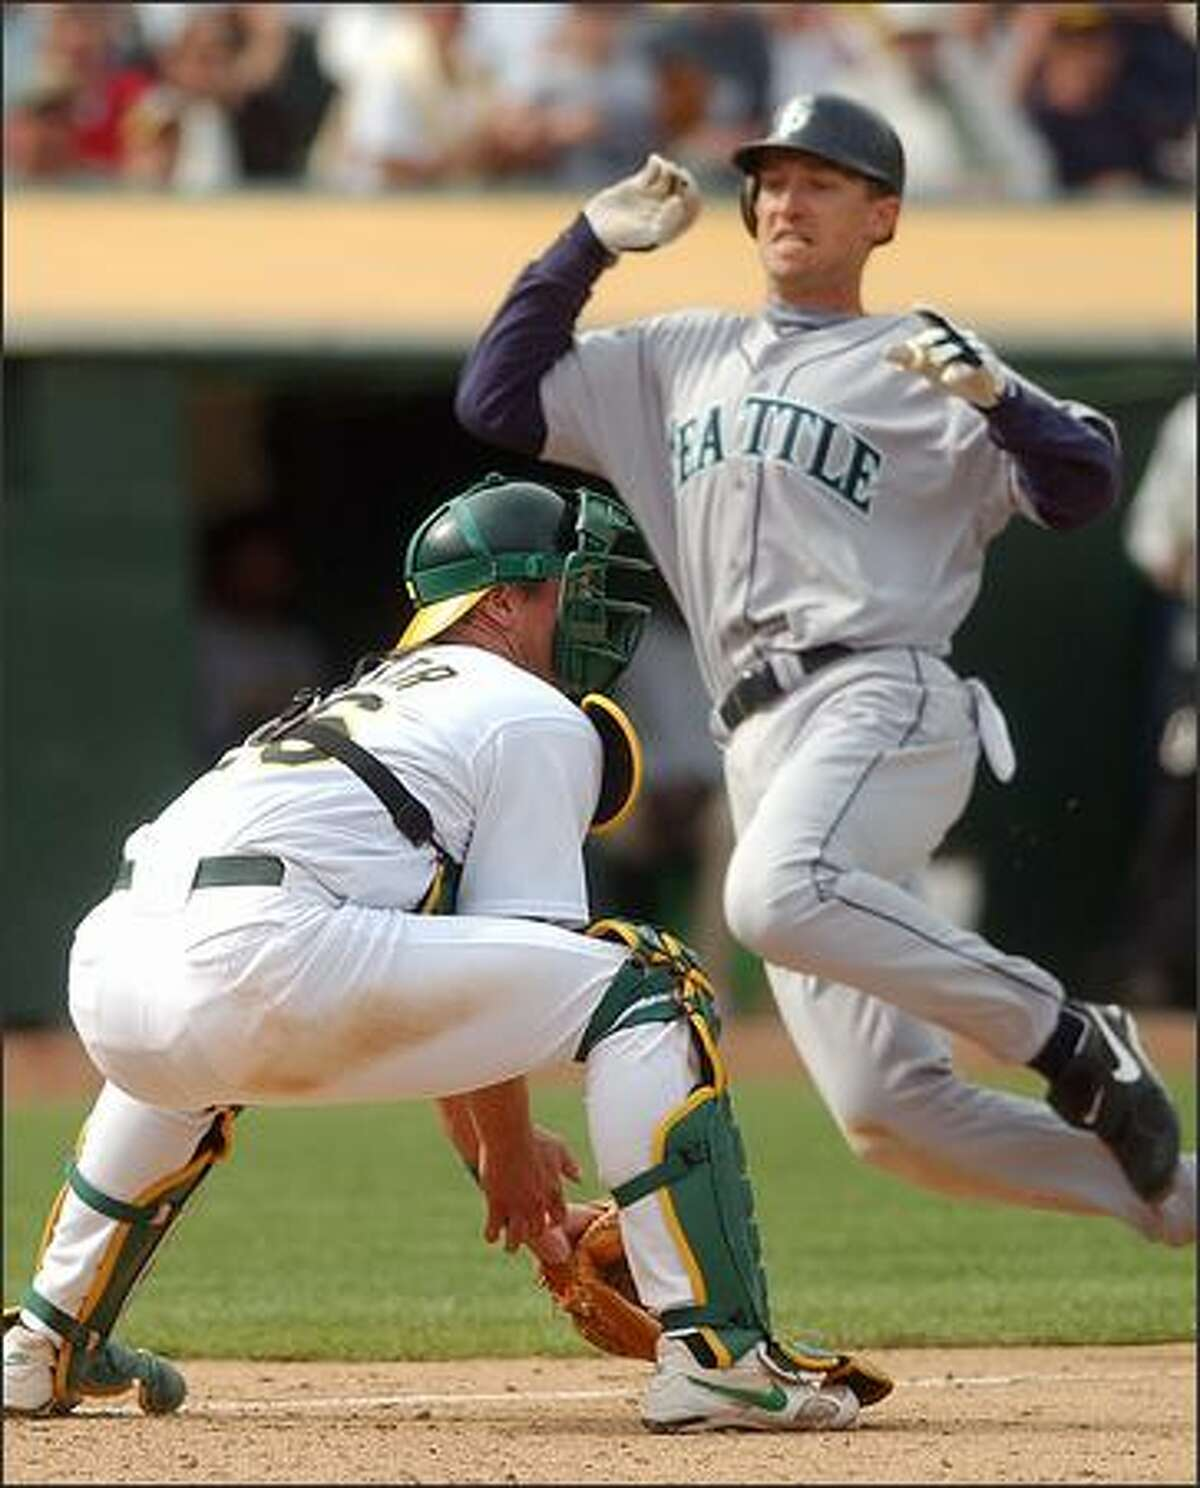 John Olerud goes into his slide as Oakland catcher Damian Miller waits for the throw during the 10th inning. Olerud scored on Willie Bloomquist's single.